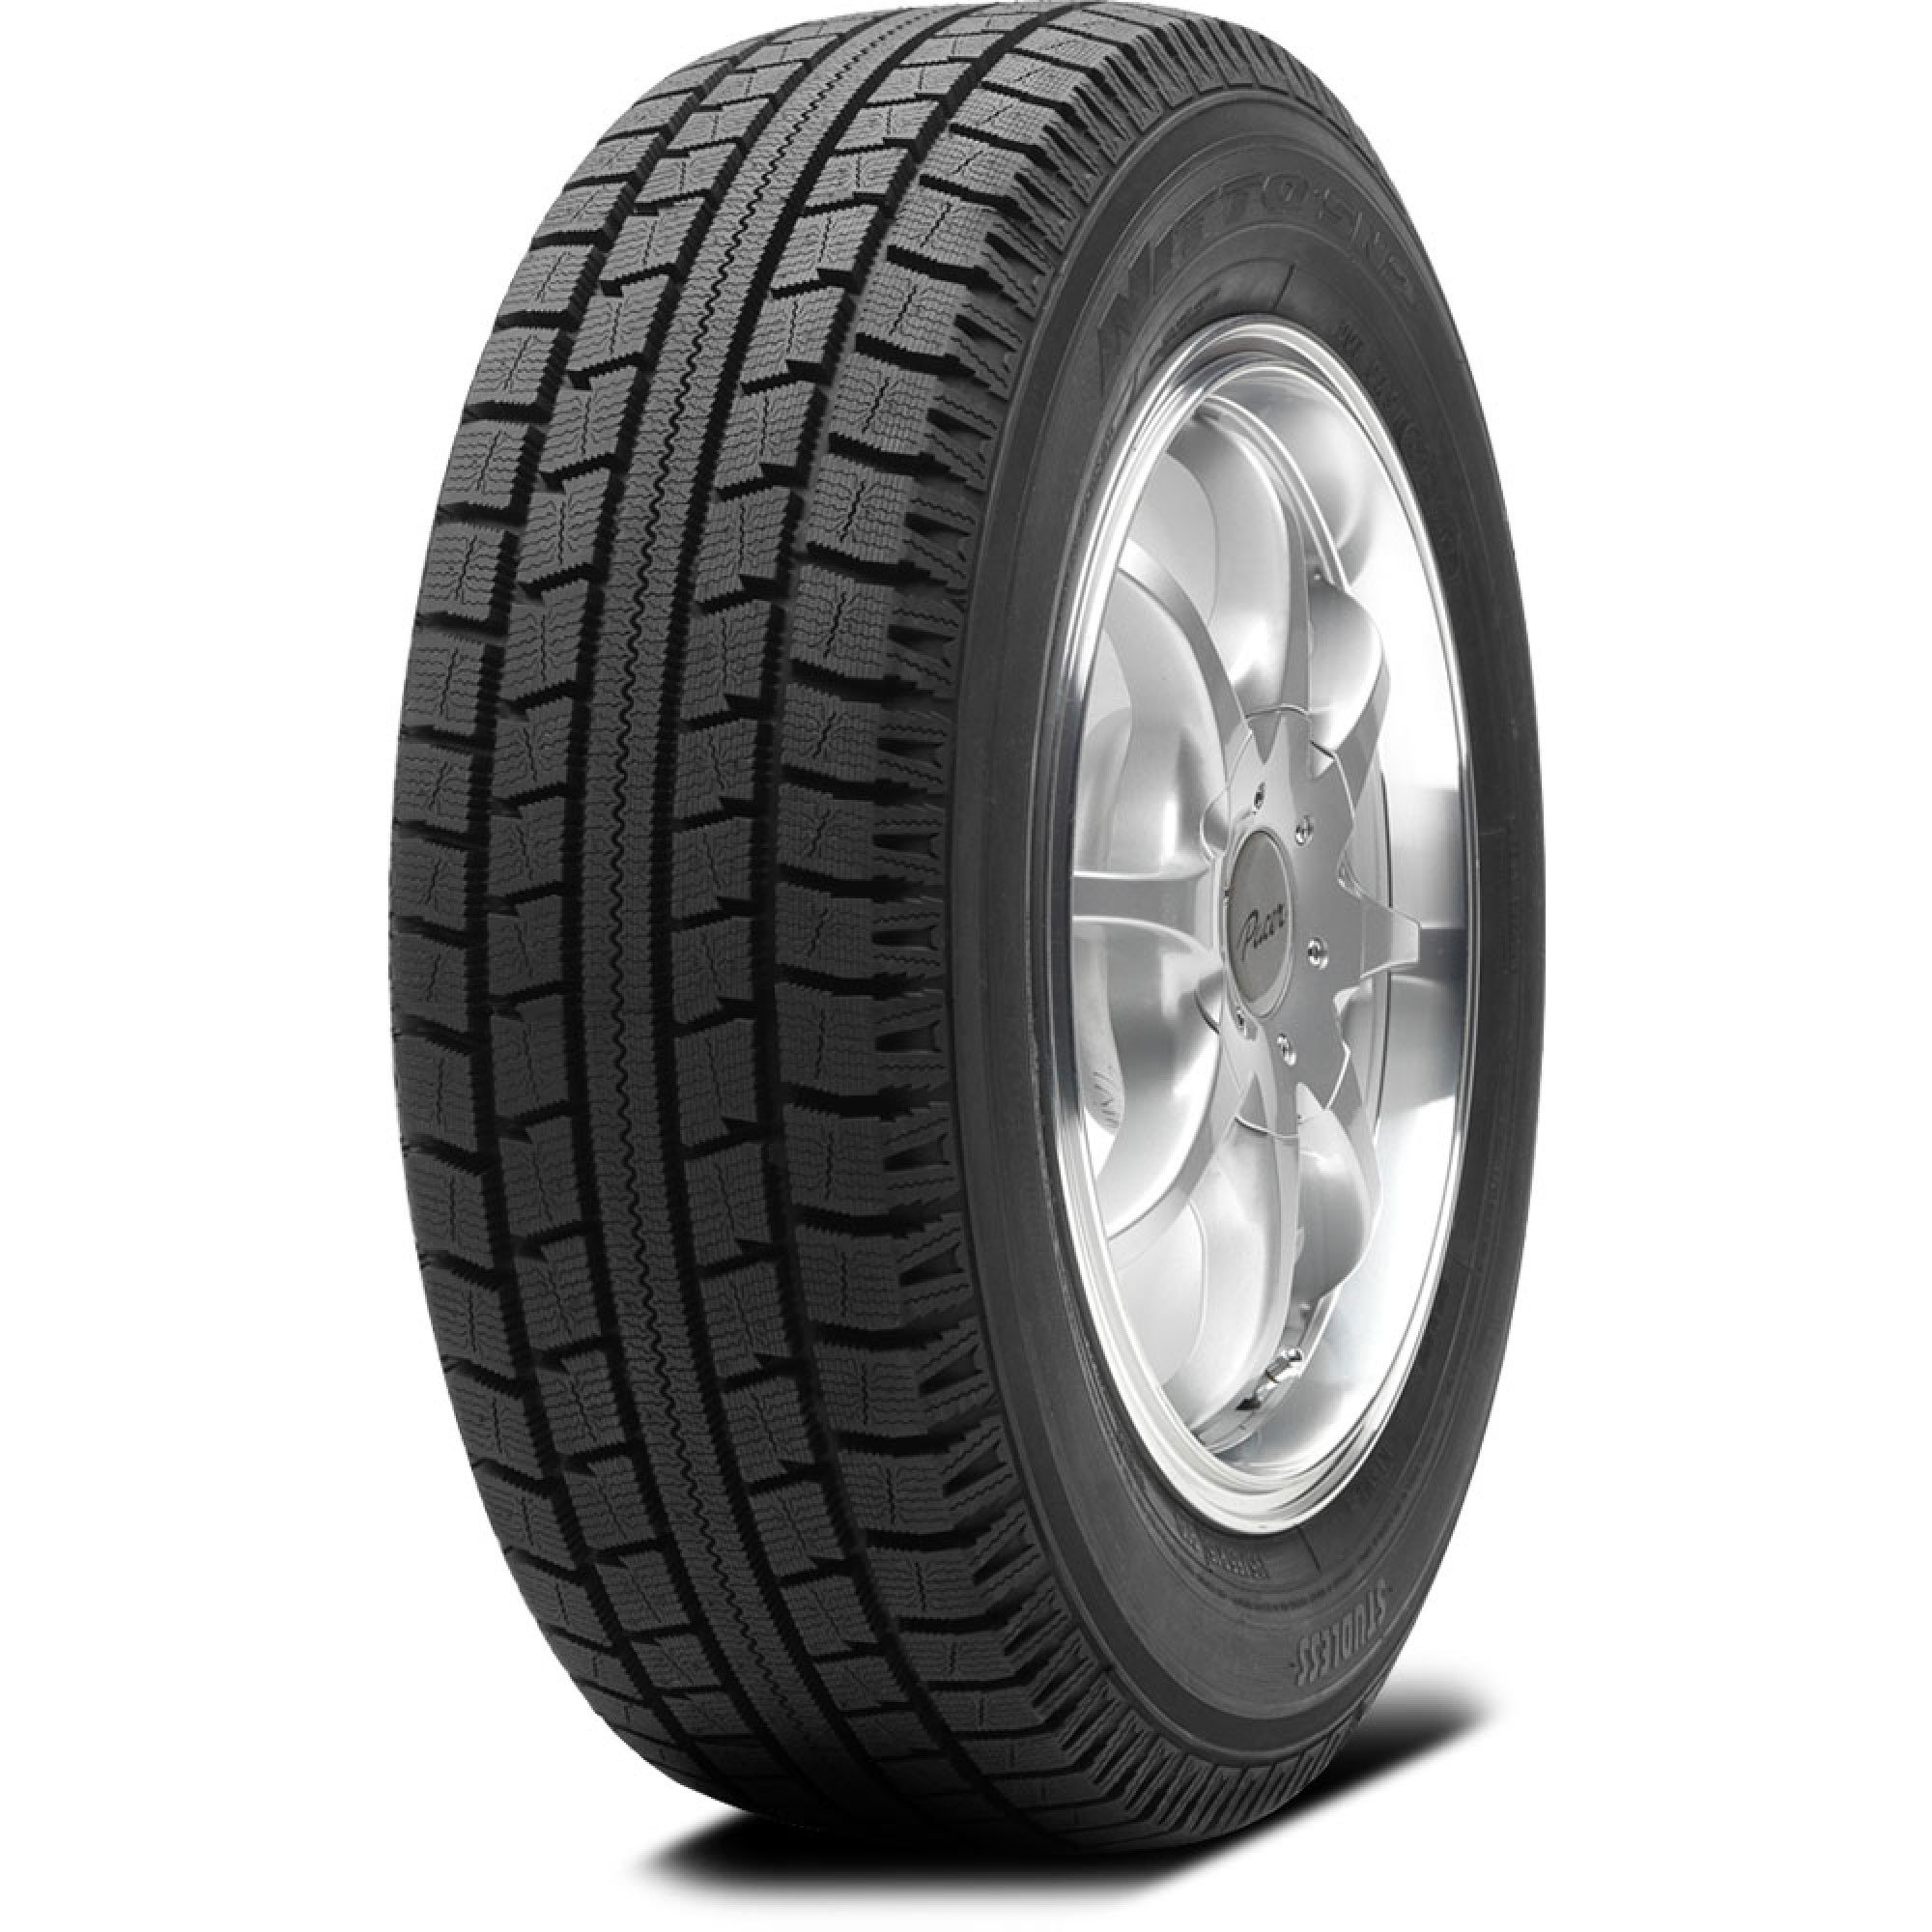 Nitto NT-SN2 Winter Winter Radial Tire -195/65R15 91T